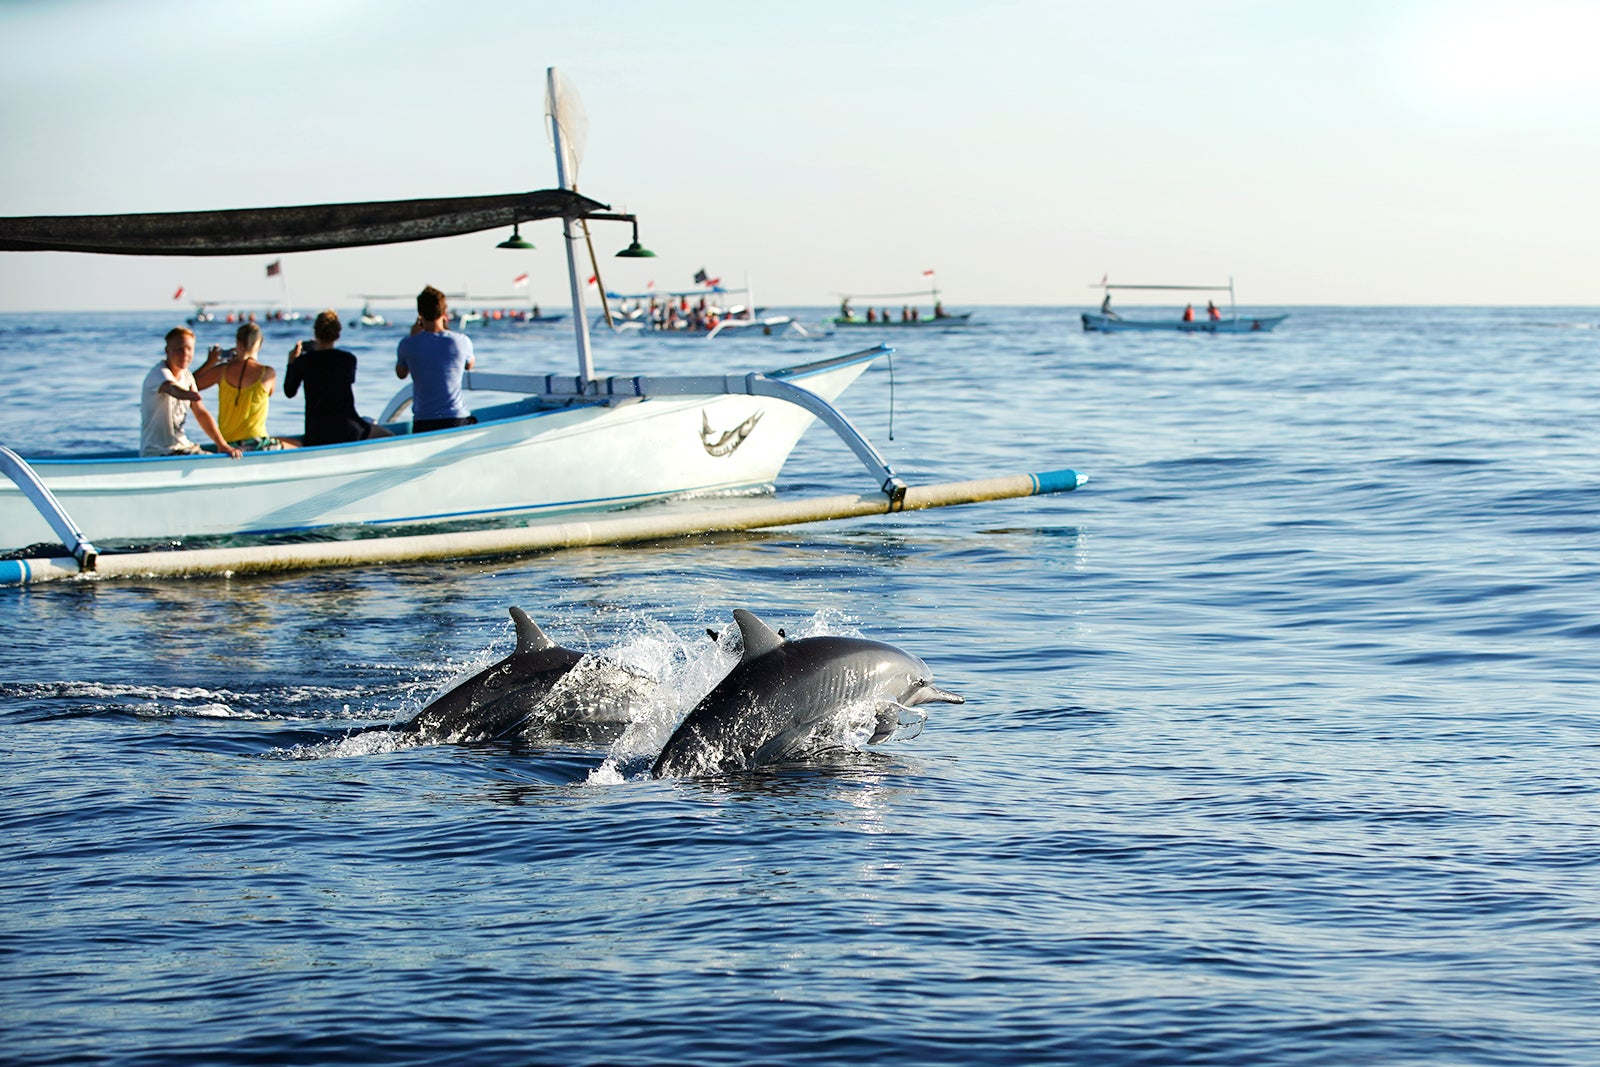 Dolphin Watching at Lovina Beach - Boat Rides to Watch Dolphins in North  Bali - Go Guides